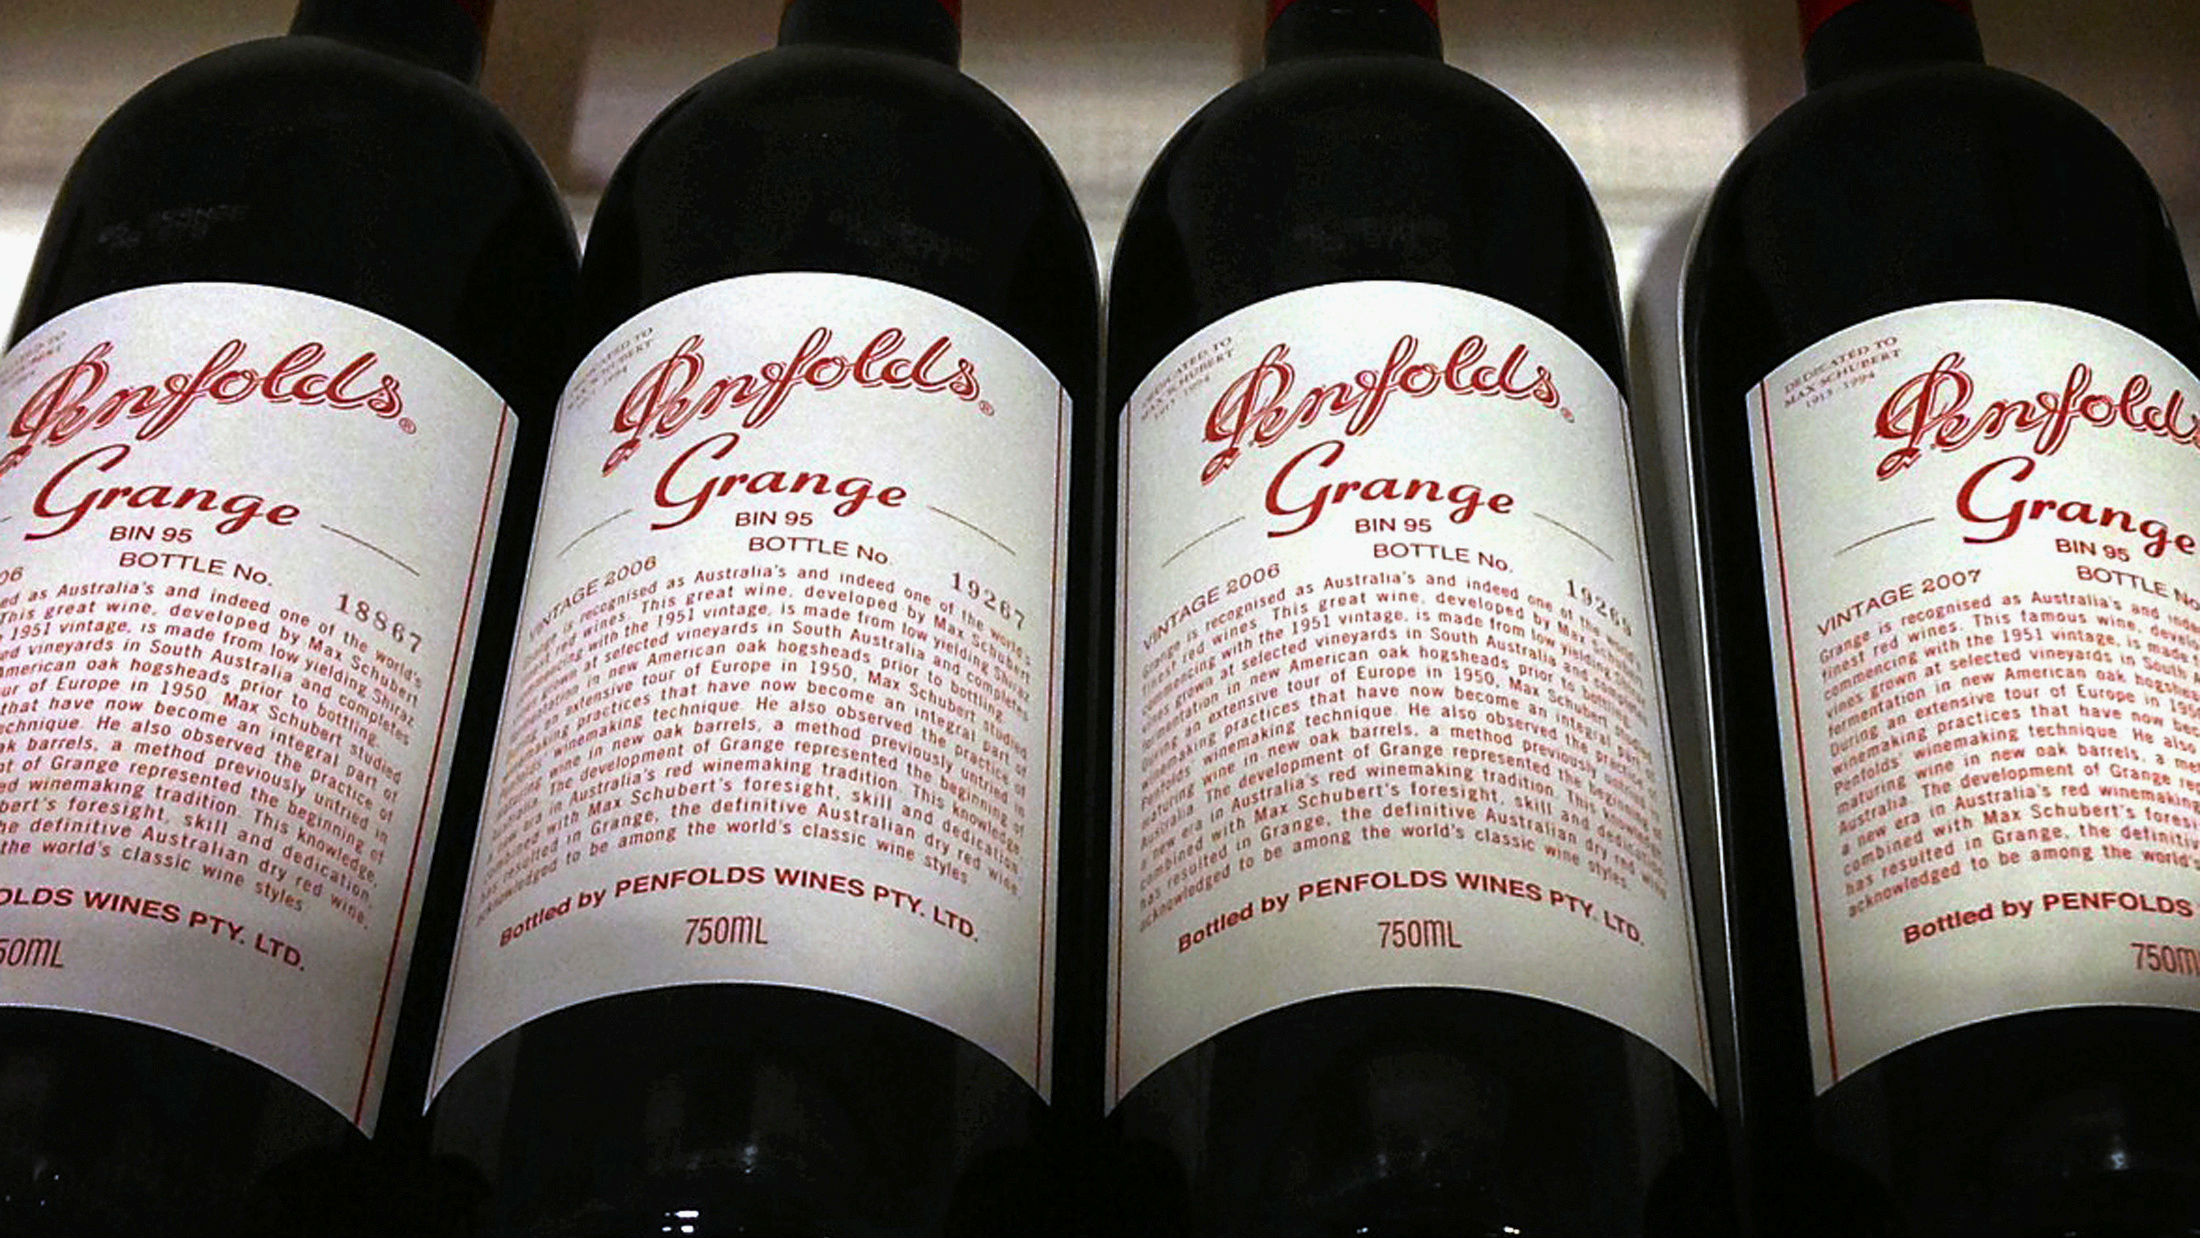 Bottles of Penfolds Grange, made by Australian wine maker Penfolds and owned by Australia's Treasury Wine Estates, sit on a shelf for sale at a wine shop in central Sydney, Australia, August 4, 2014.